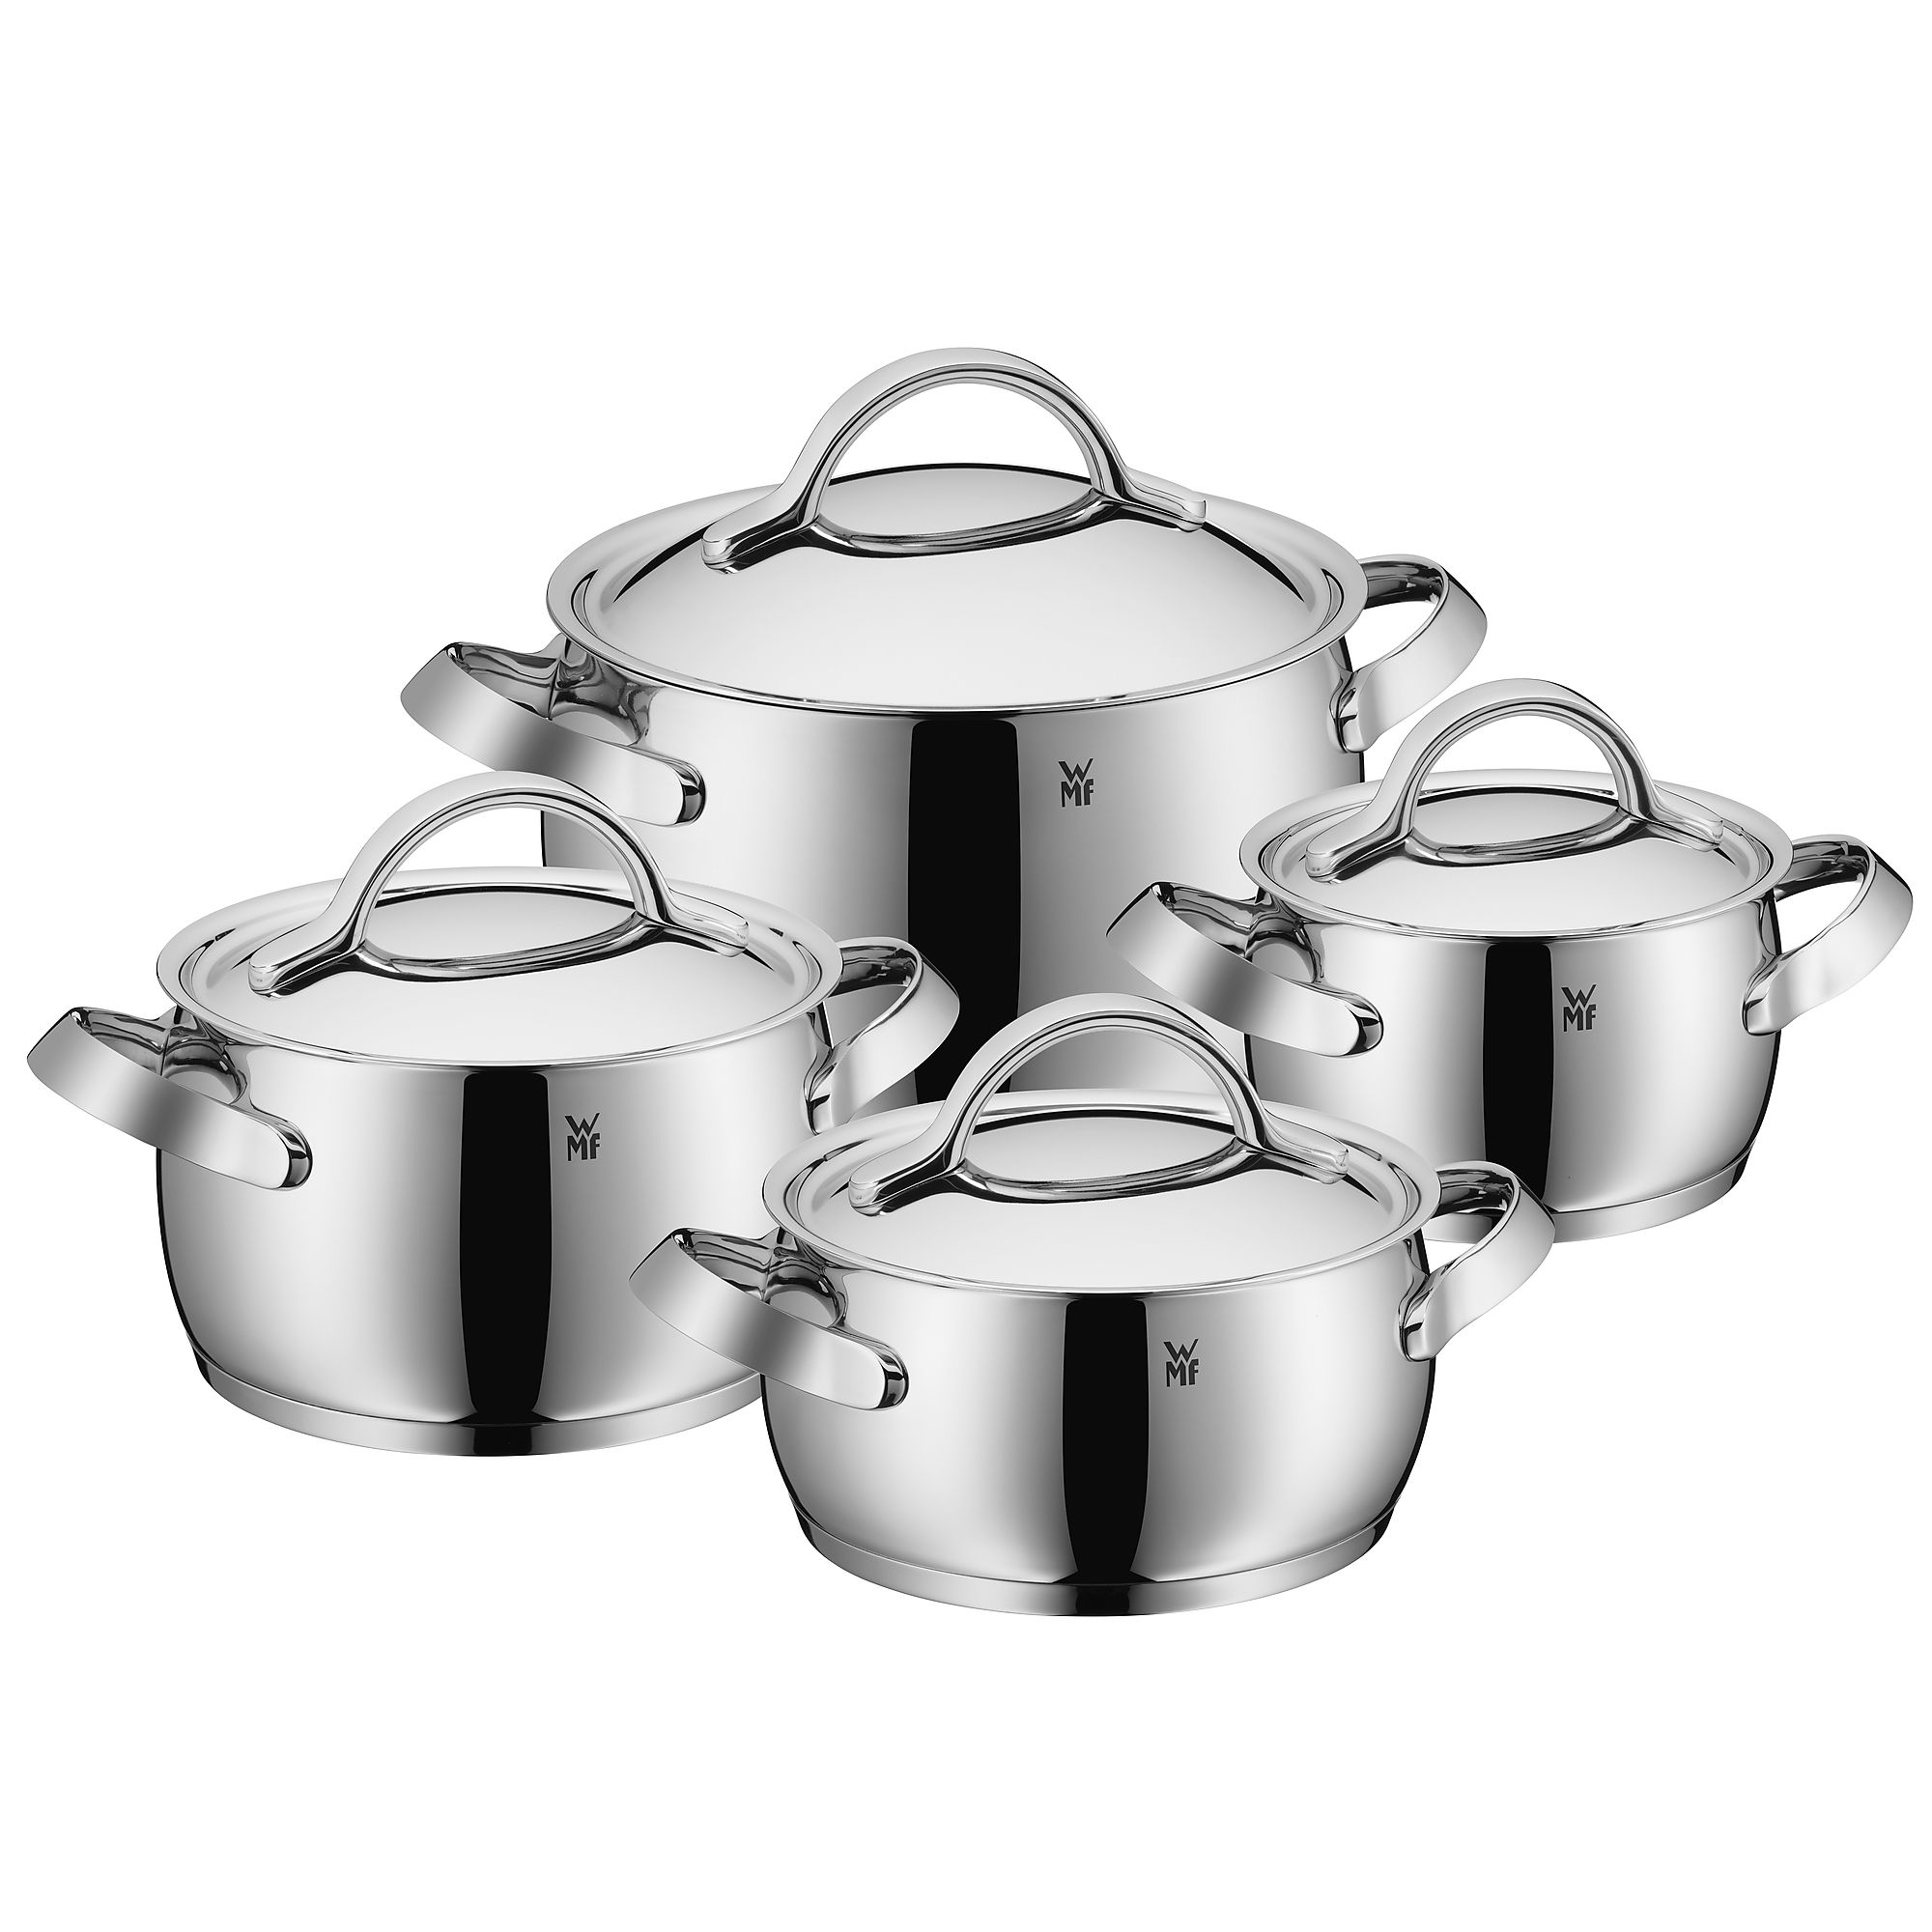 WMF 콘센토 콘체르토 8피스 쿡웨어 세트 (Made in Germany) WMF Concento 8-Piece Cookware Set